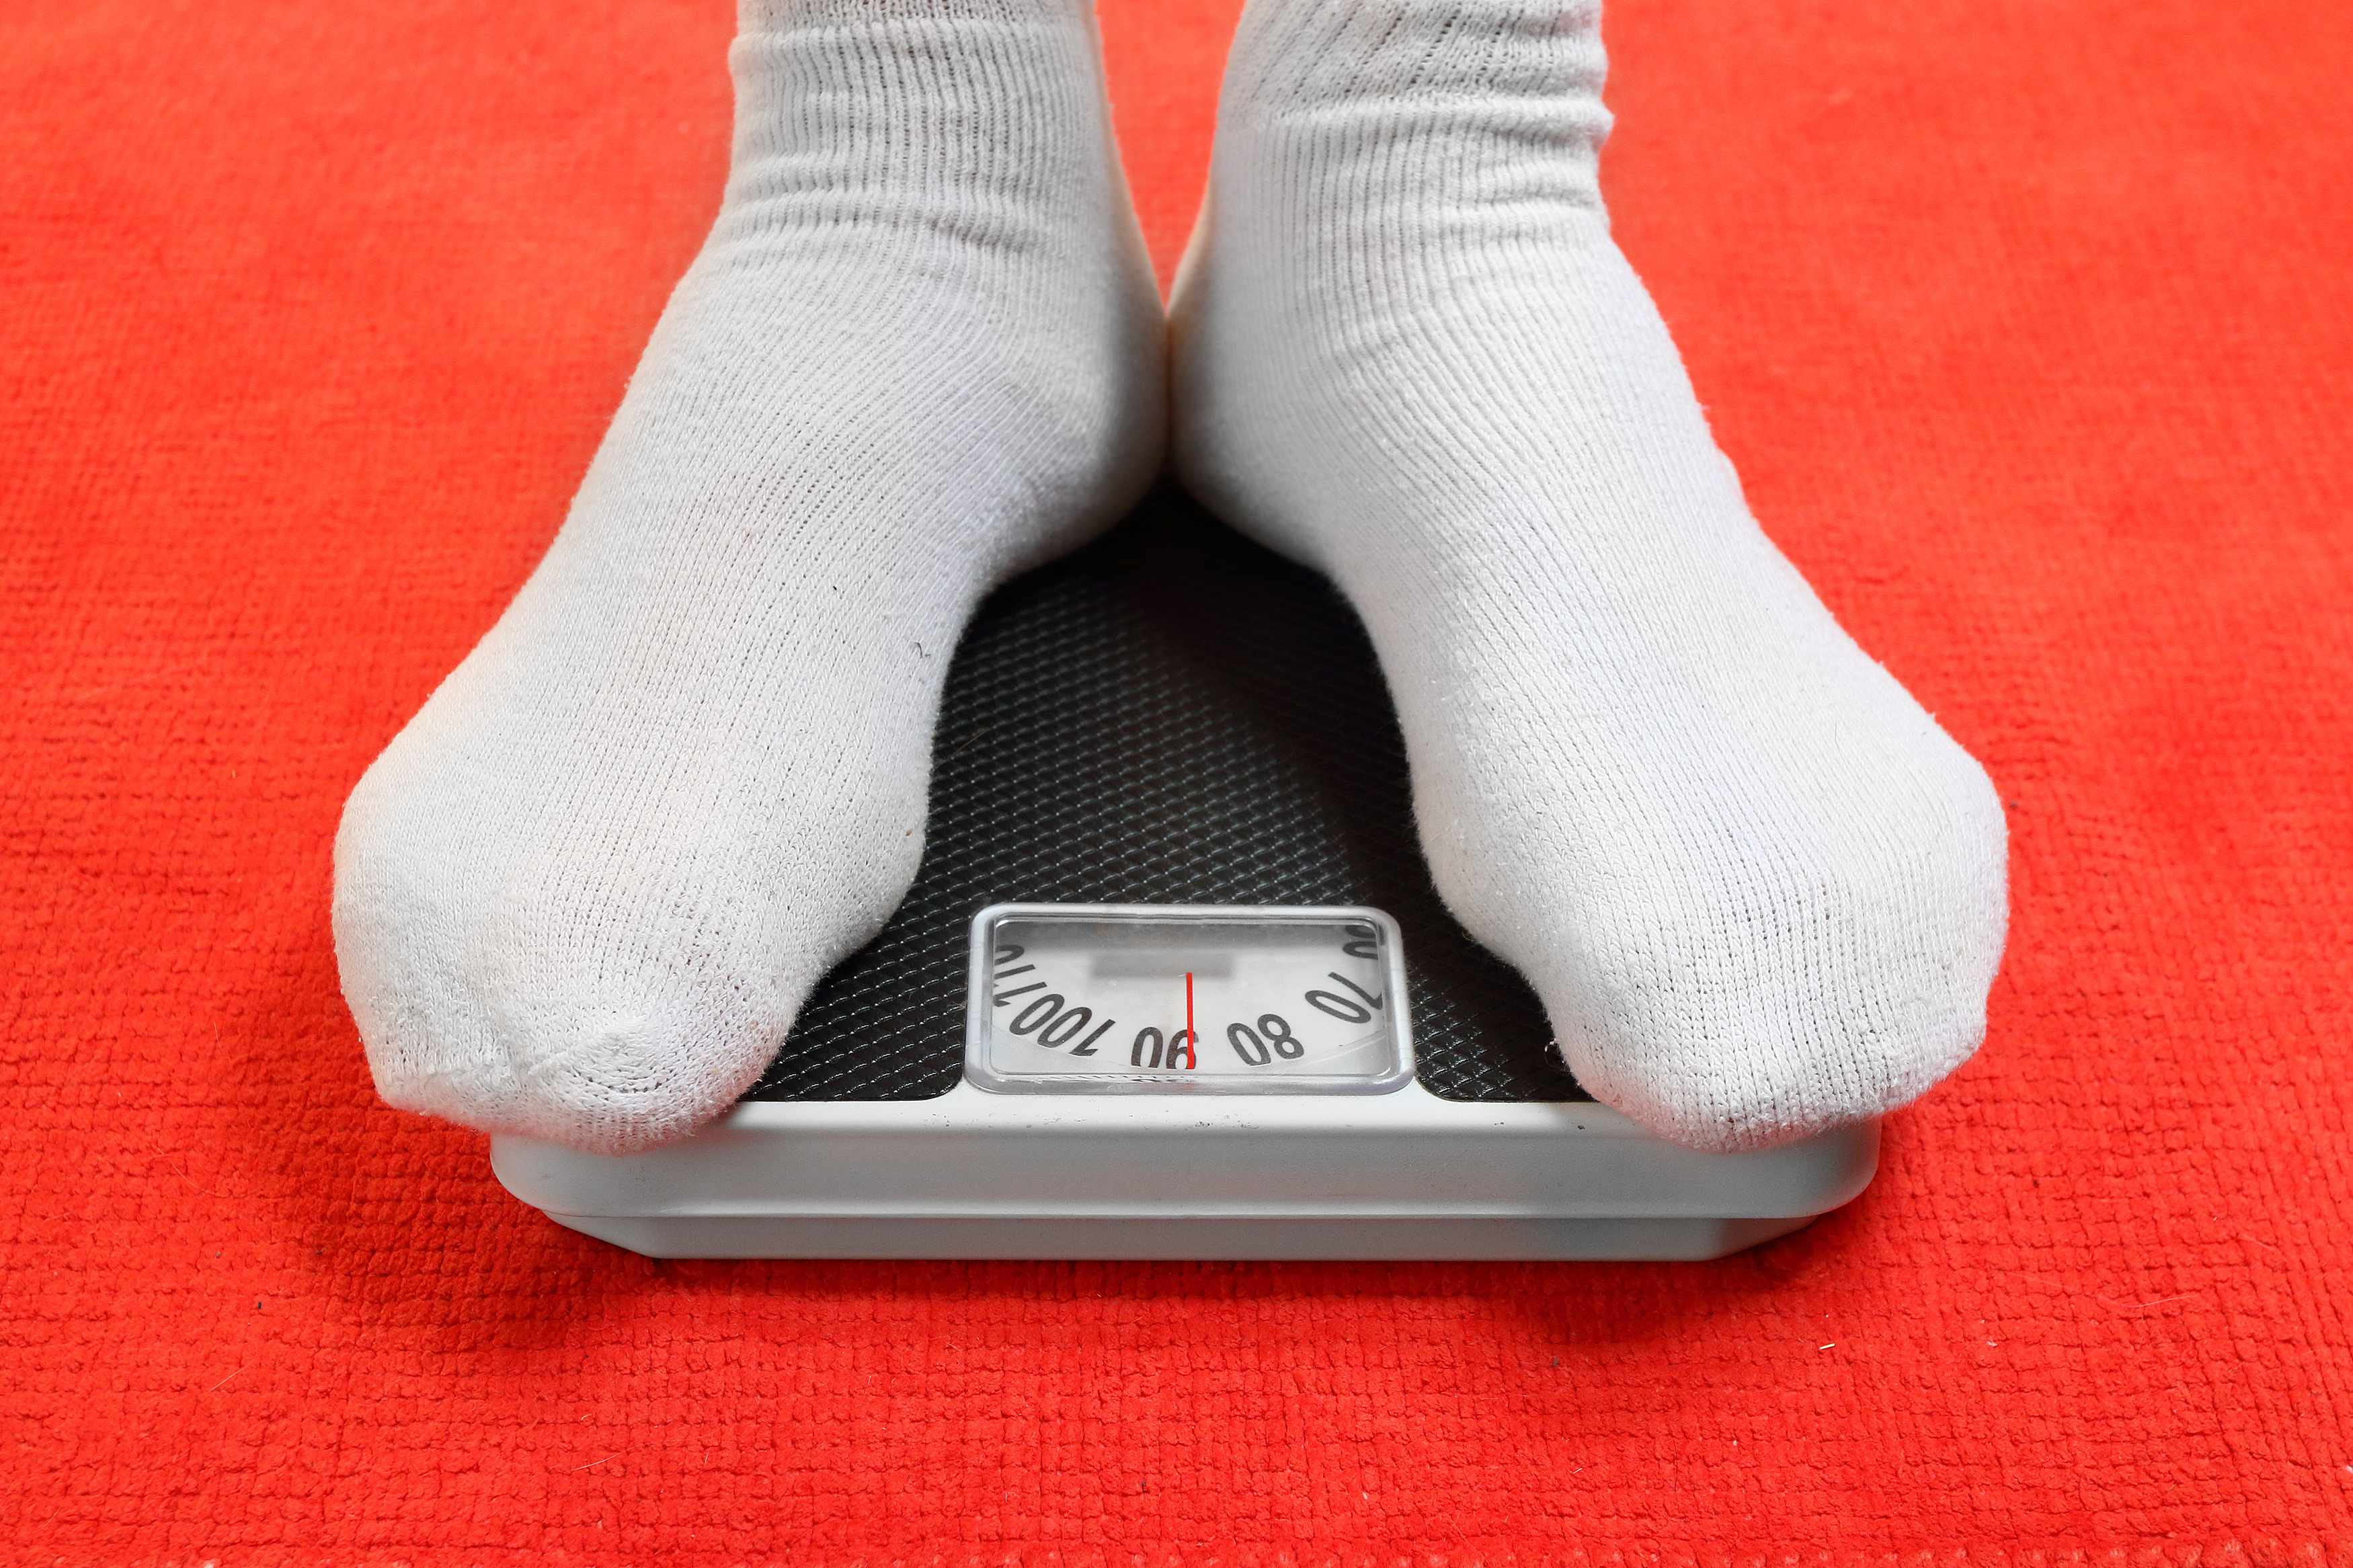 a young person in white socks checking weight on a scale